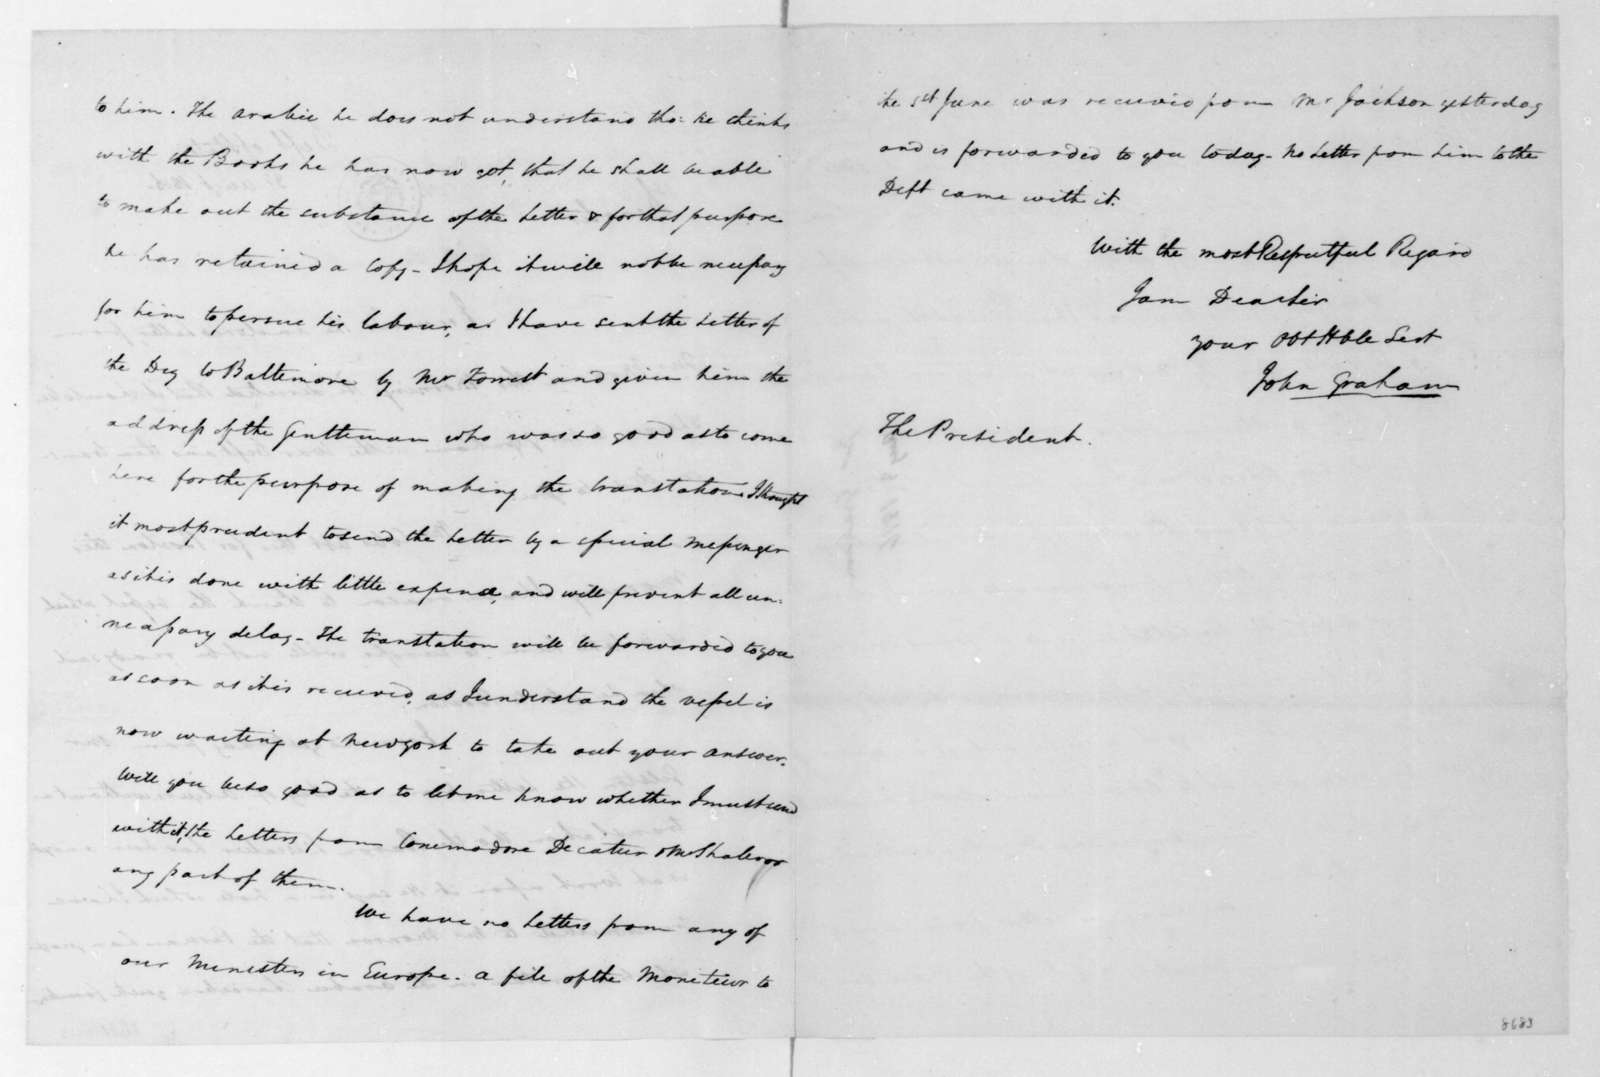 John Graham to James Madison, August 3, 1816.